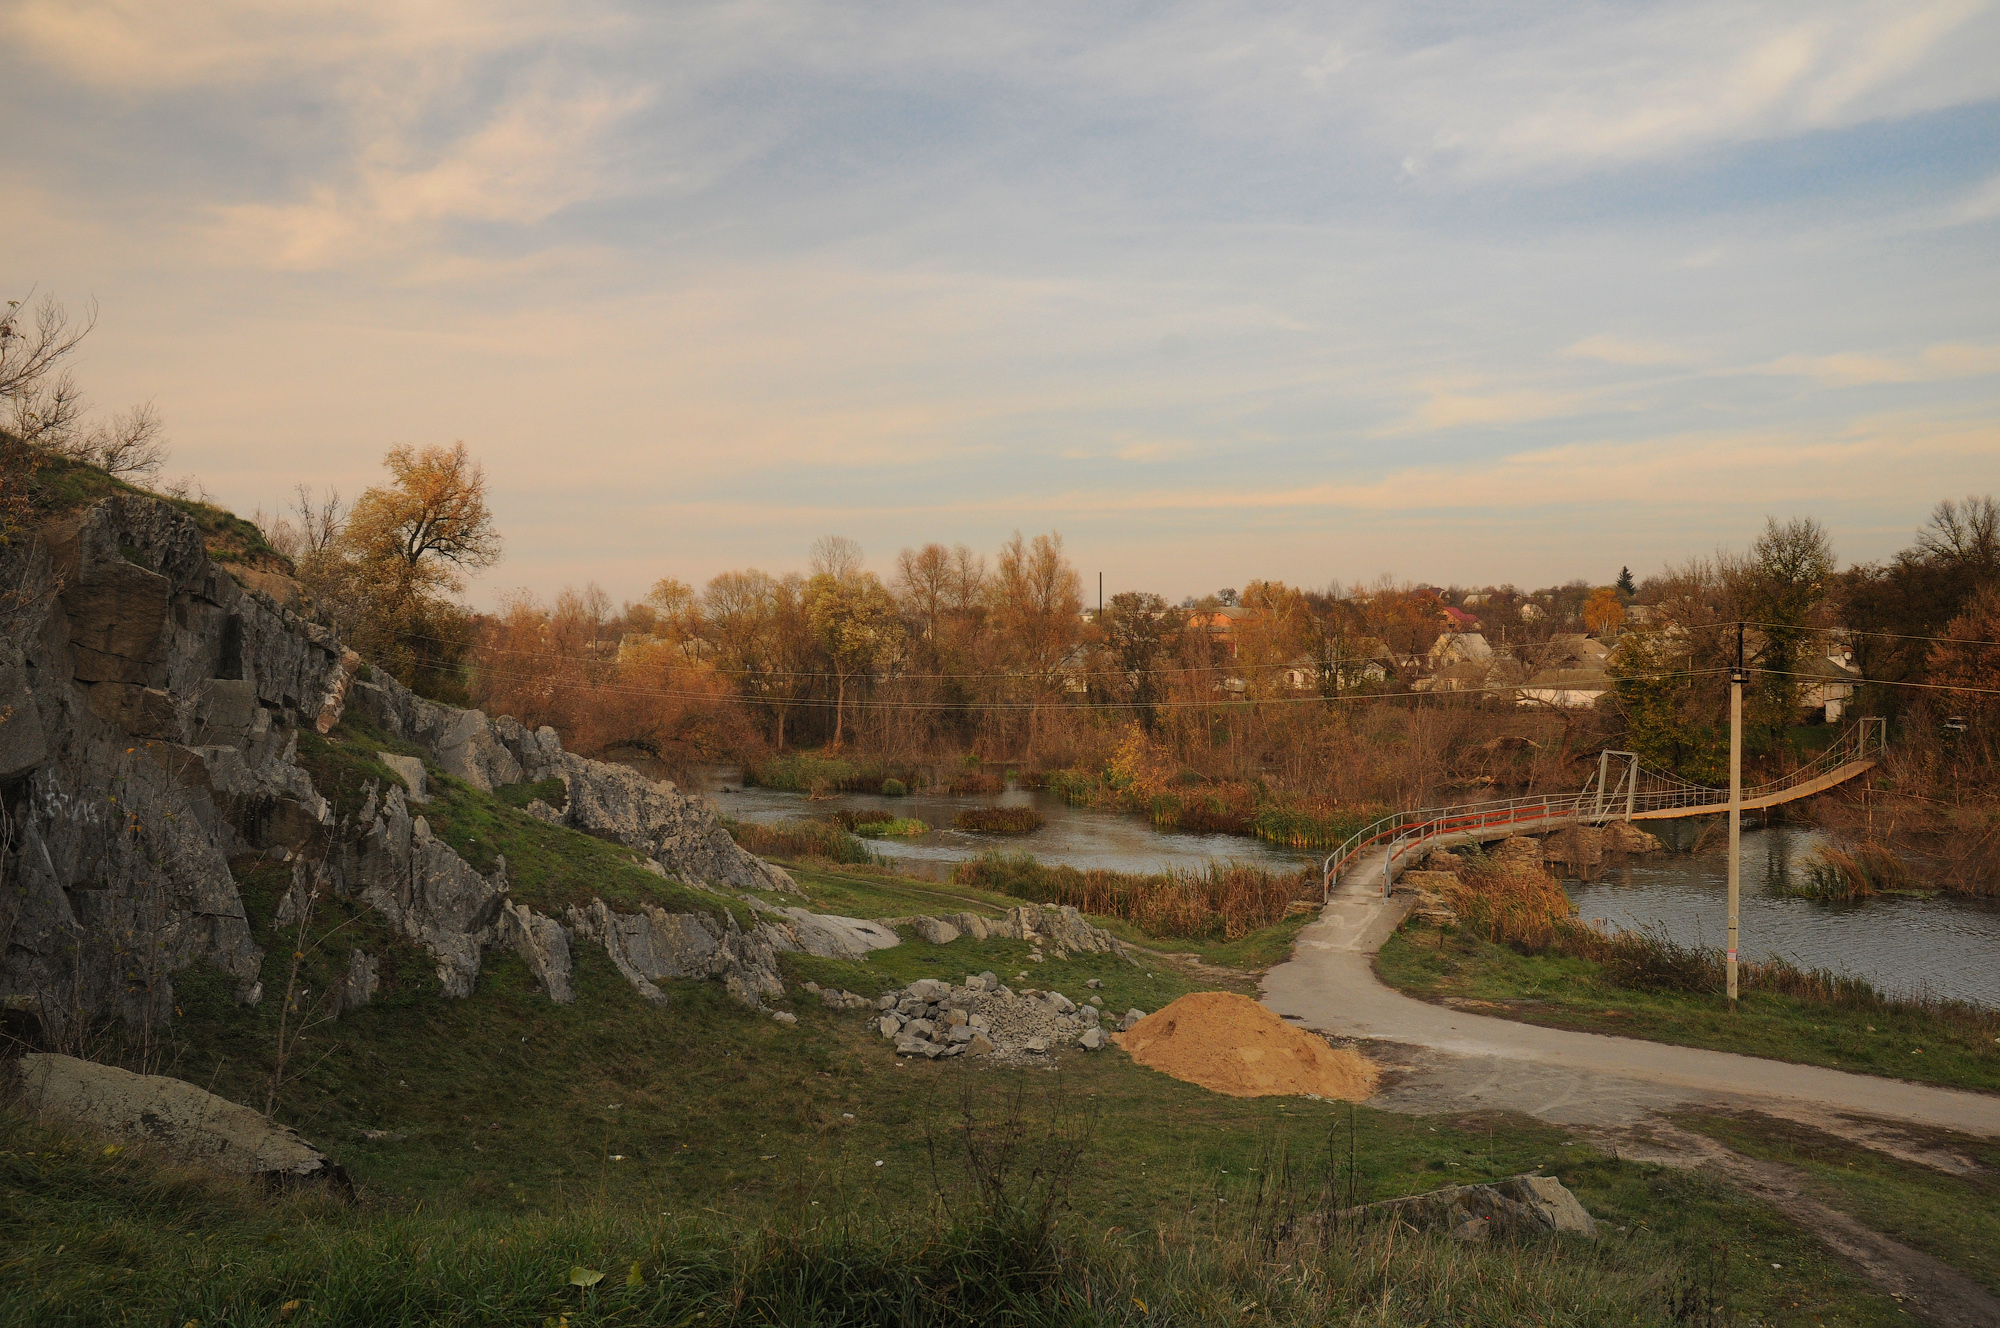 River Gniliy Tikich in Zvenigorodka